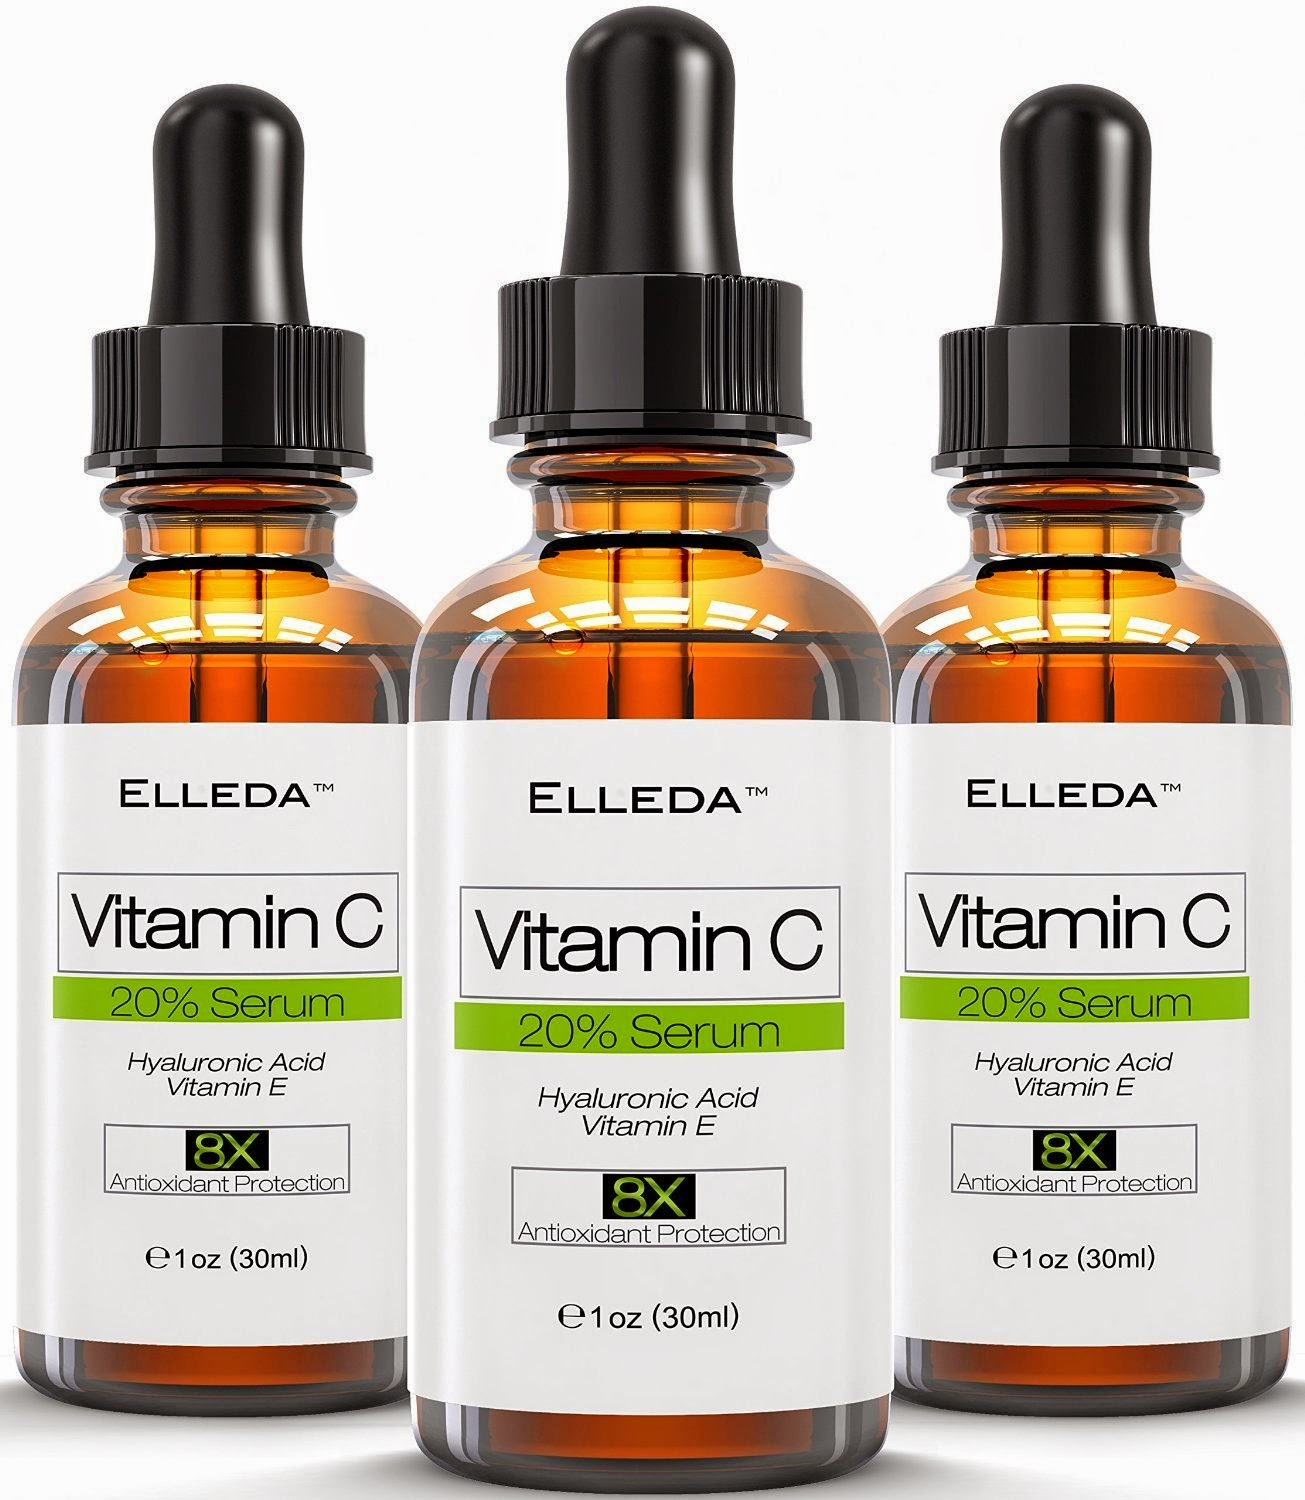 http://www.amazon.com/organic-vitamin-20%25-serum-formula/dp/b00qbdgxme/ref=sr_1_1?ie=utf8&qid=1421505451&sr=8-1&keywords=elleda+best+organic+vitamin+c+serum+face+wrinkle+anti+aging